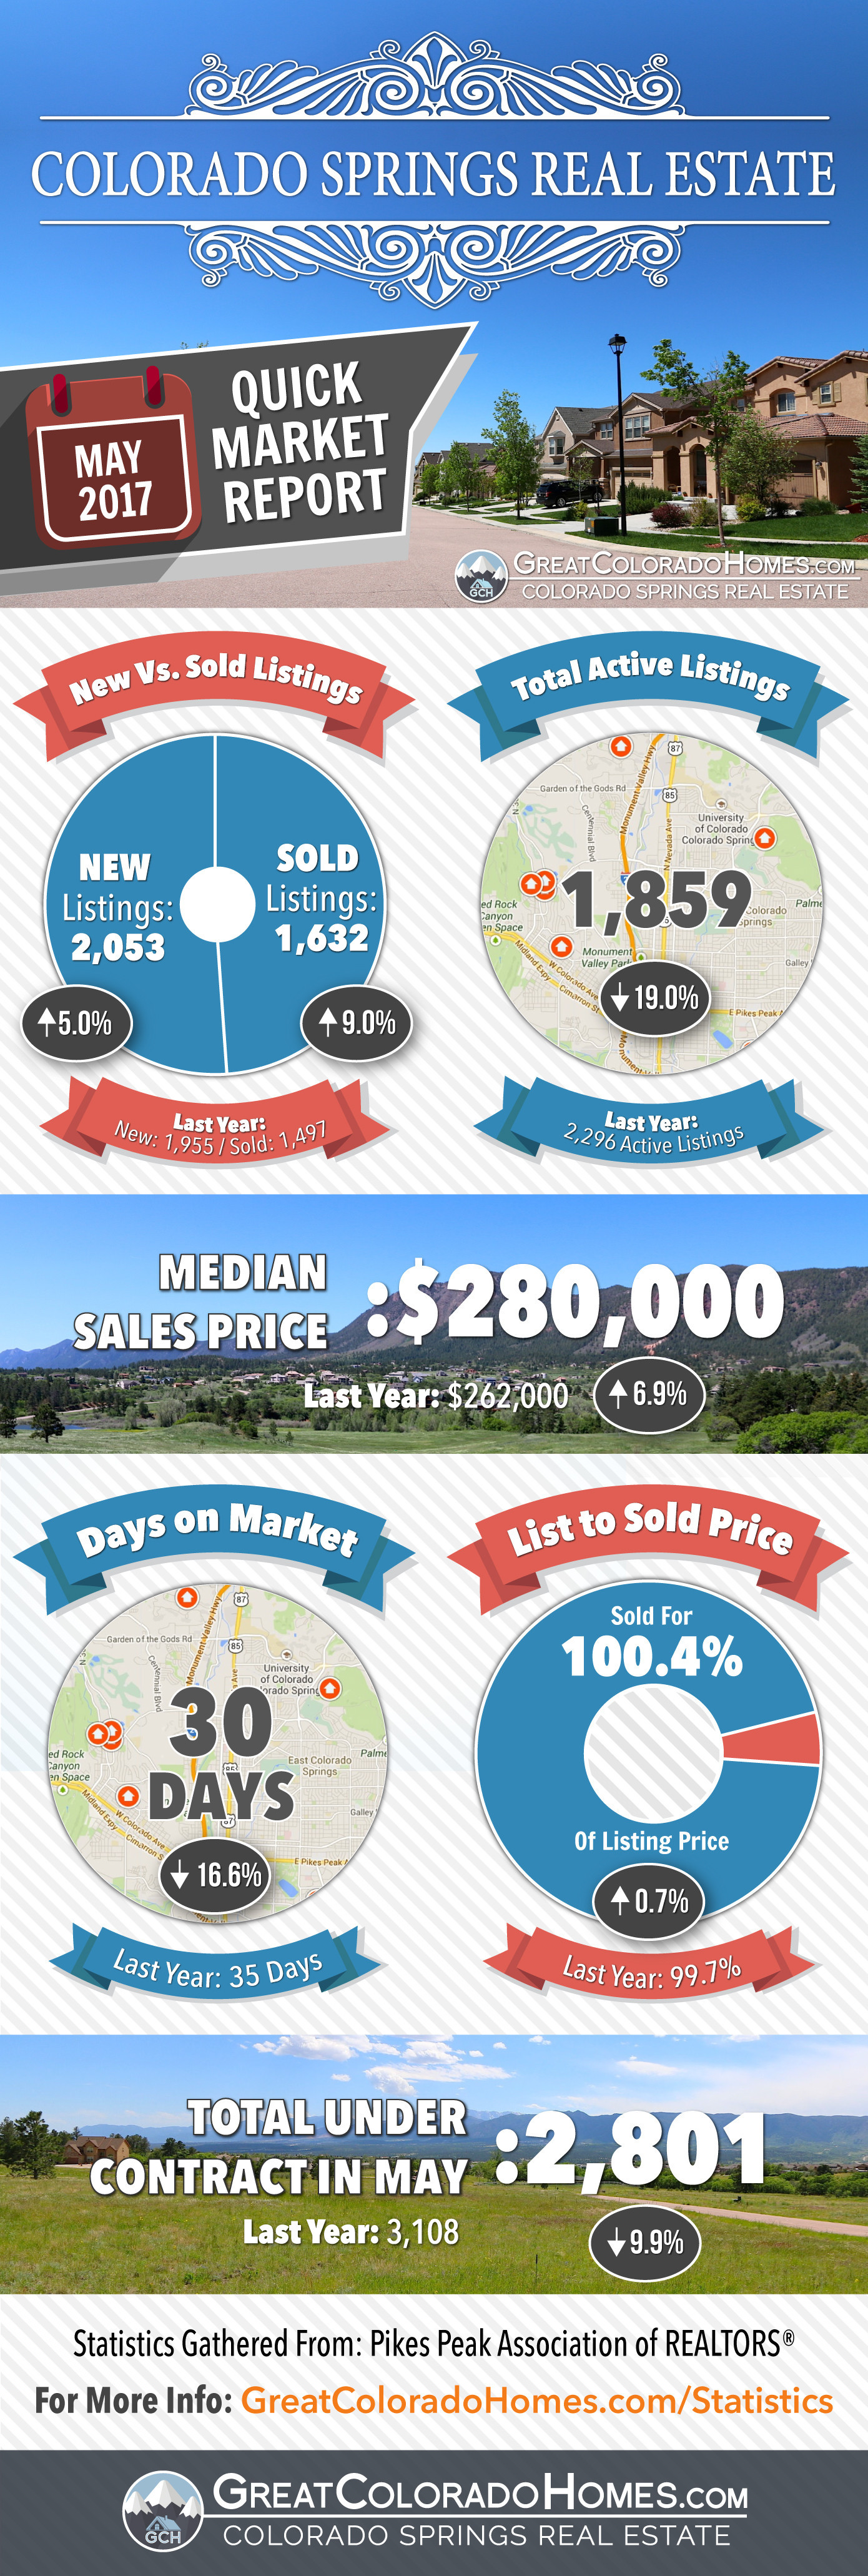 May 2017 Colorado Springs Real Estate Market Statistics